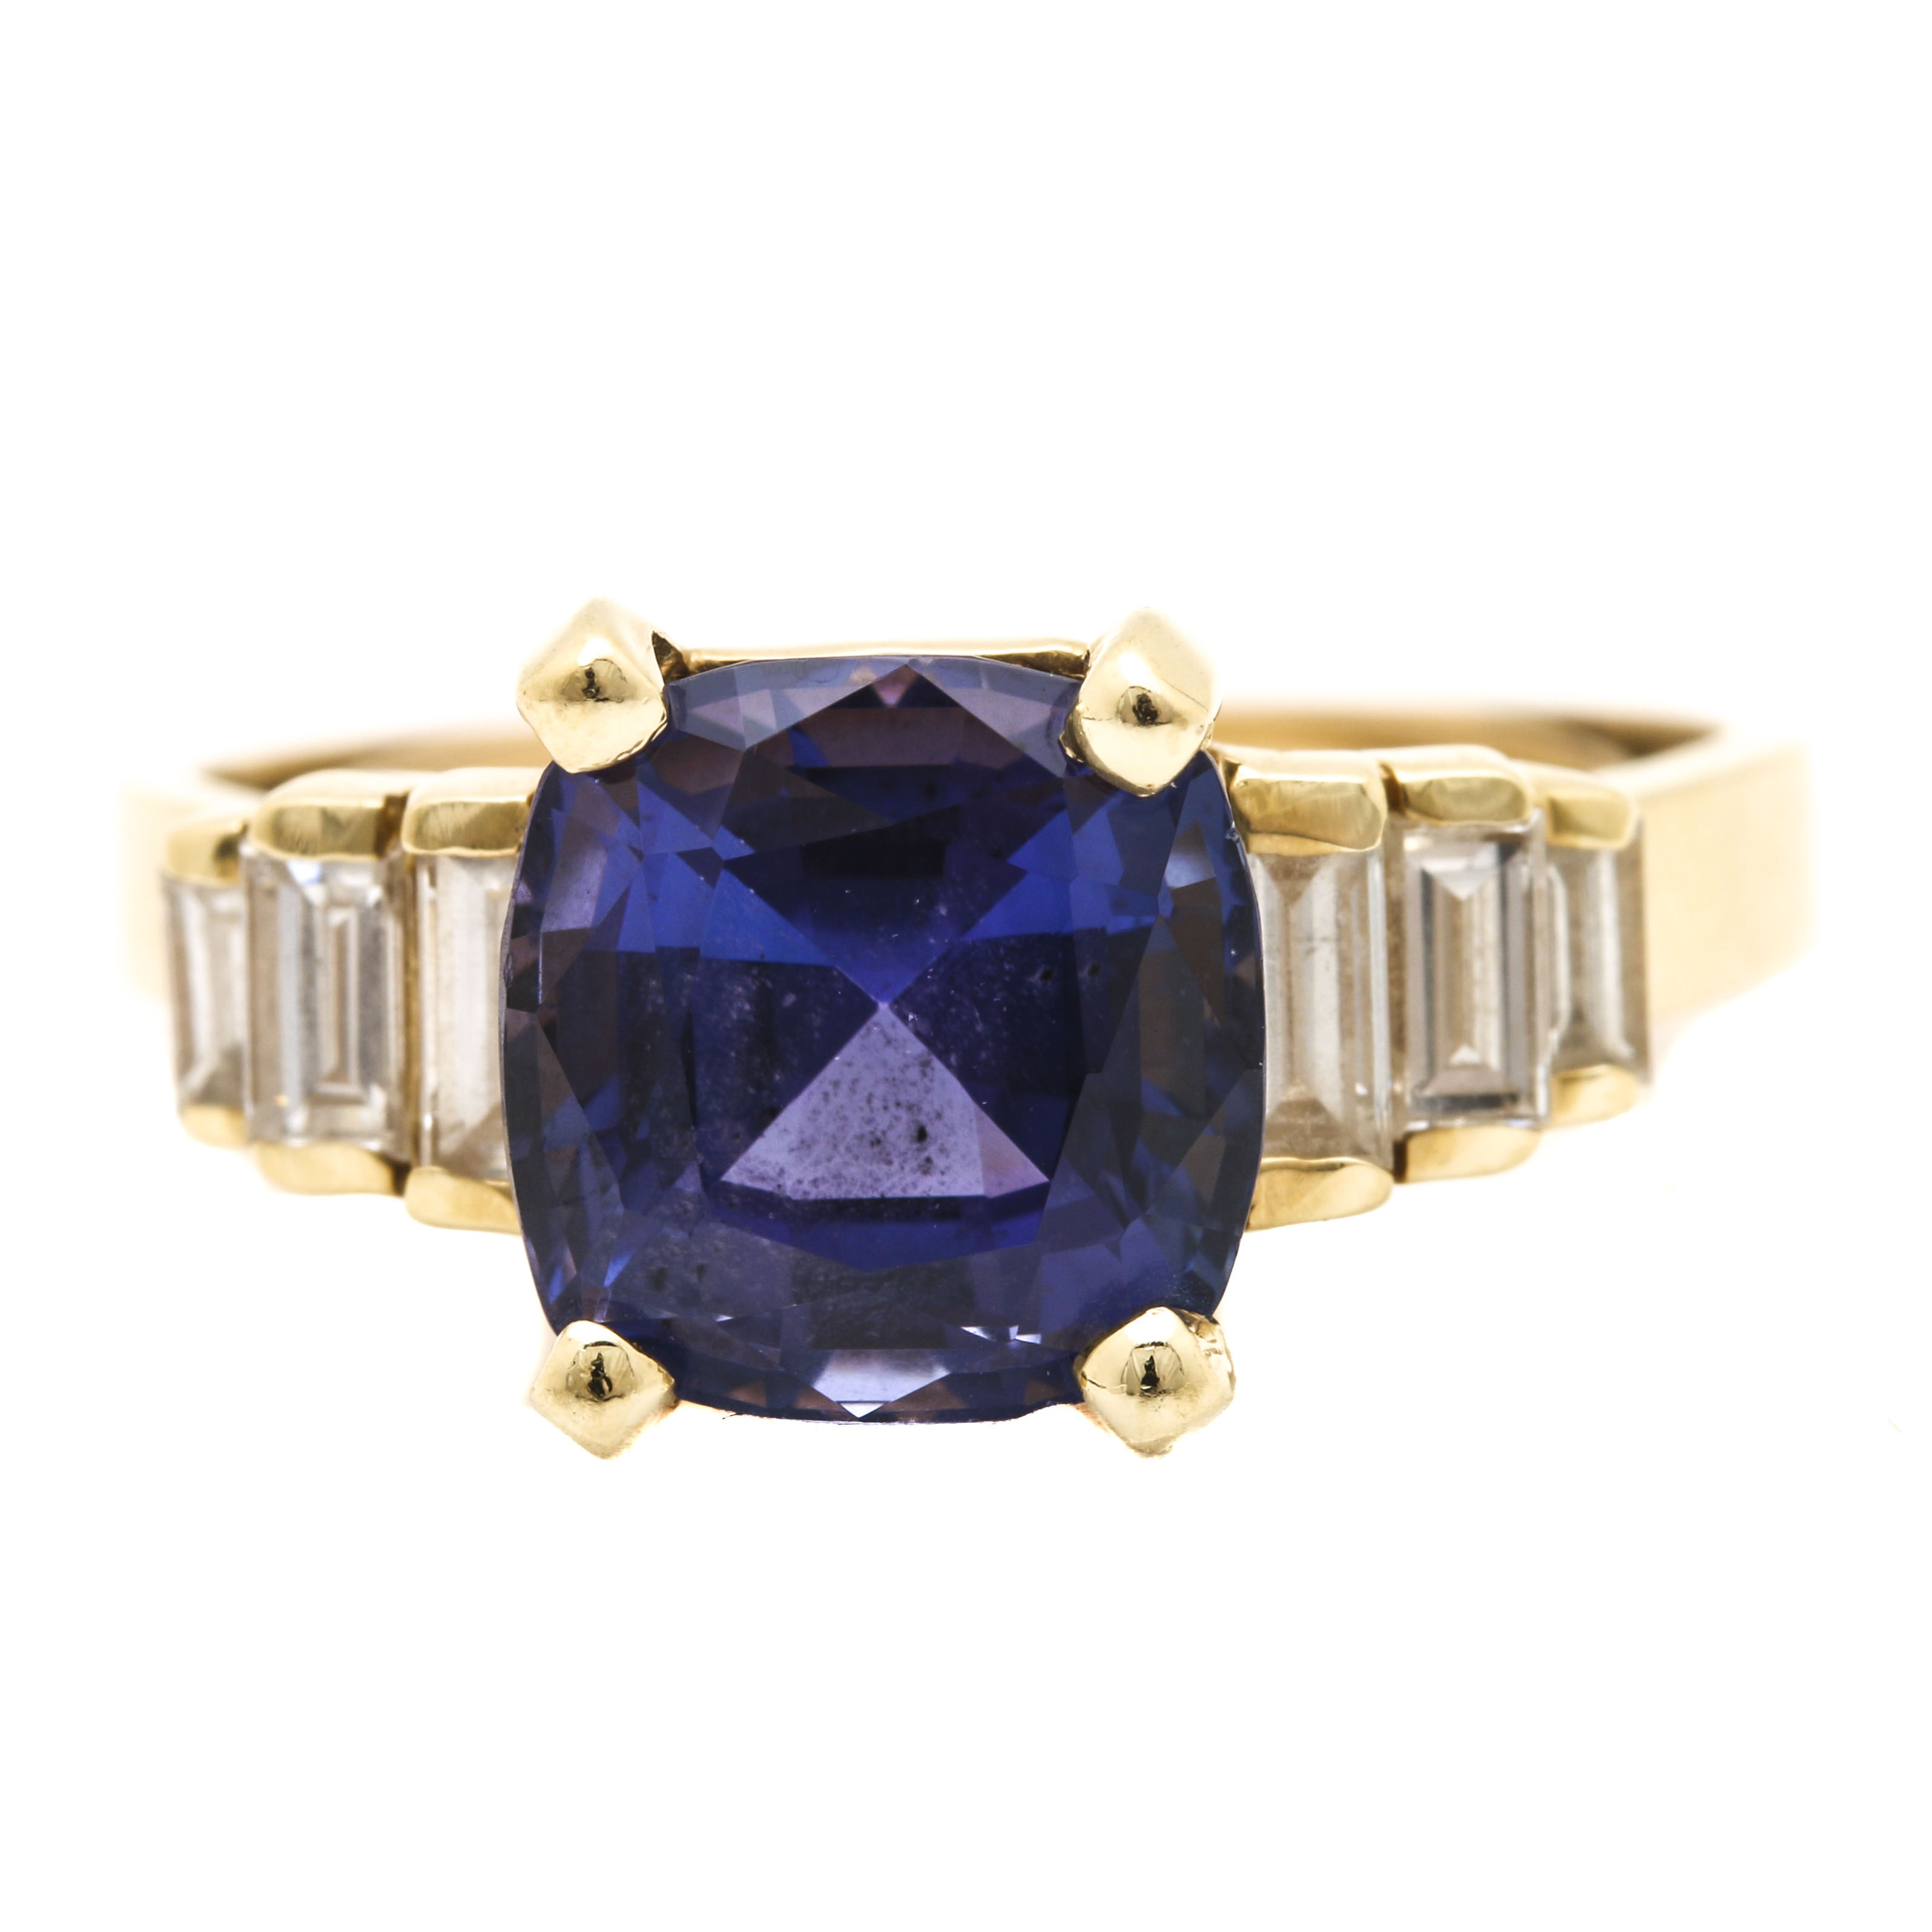 Le Vian 14K Yellow Gold 3.44 CT Tanzanite and Diamond Ring